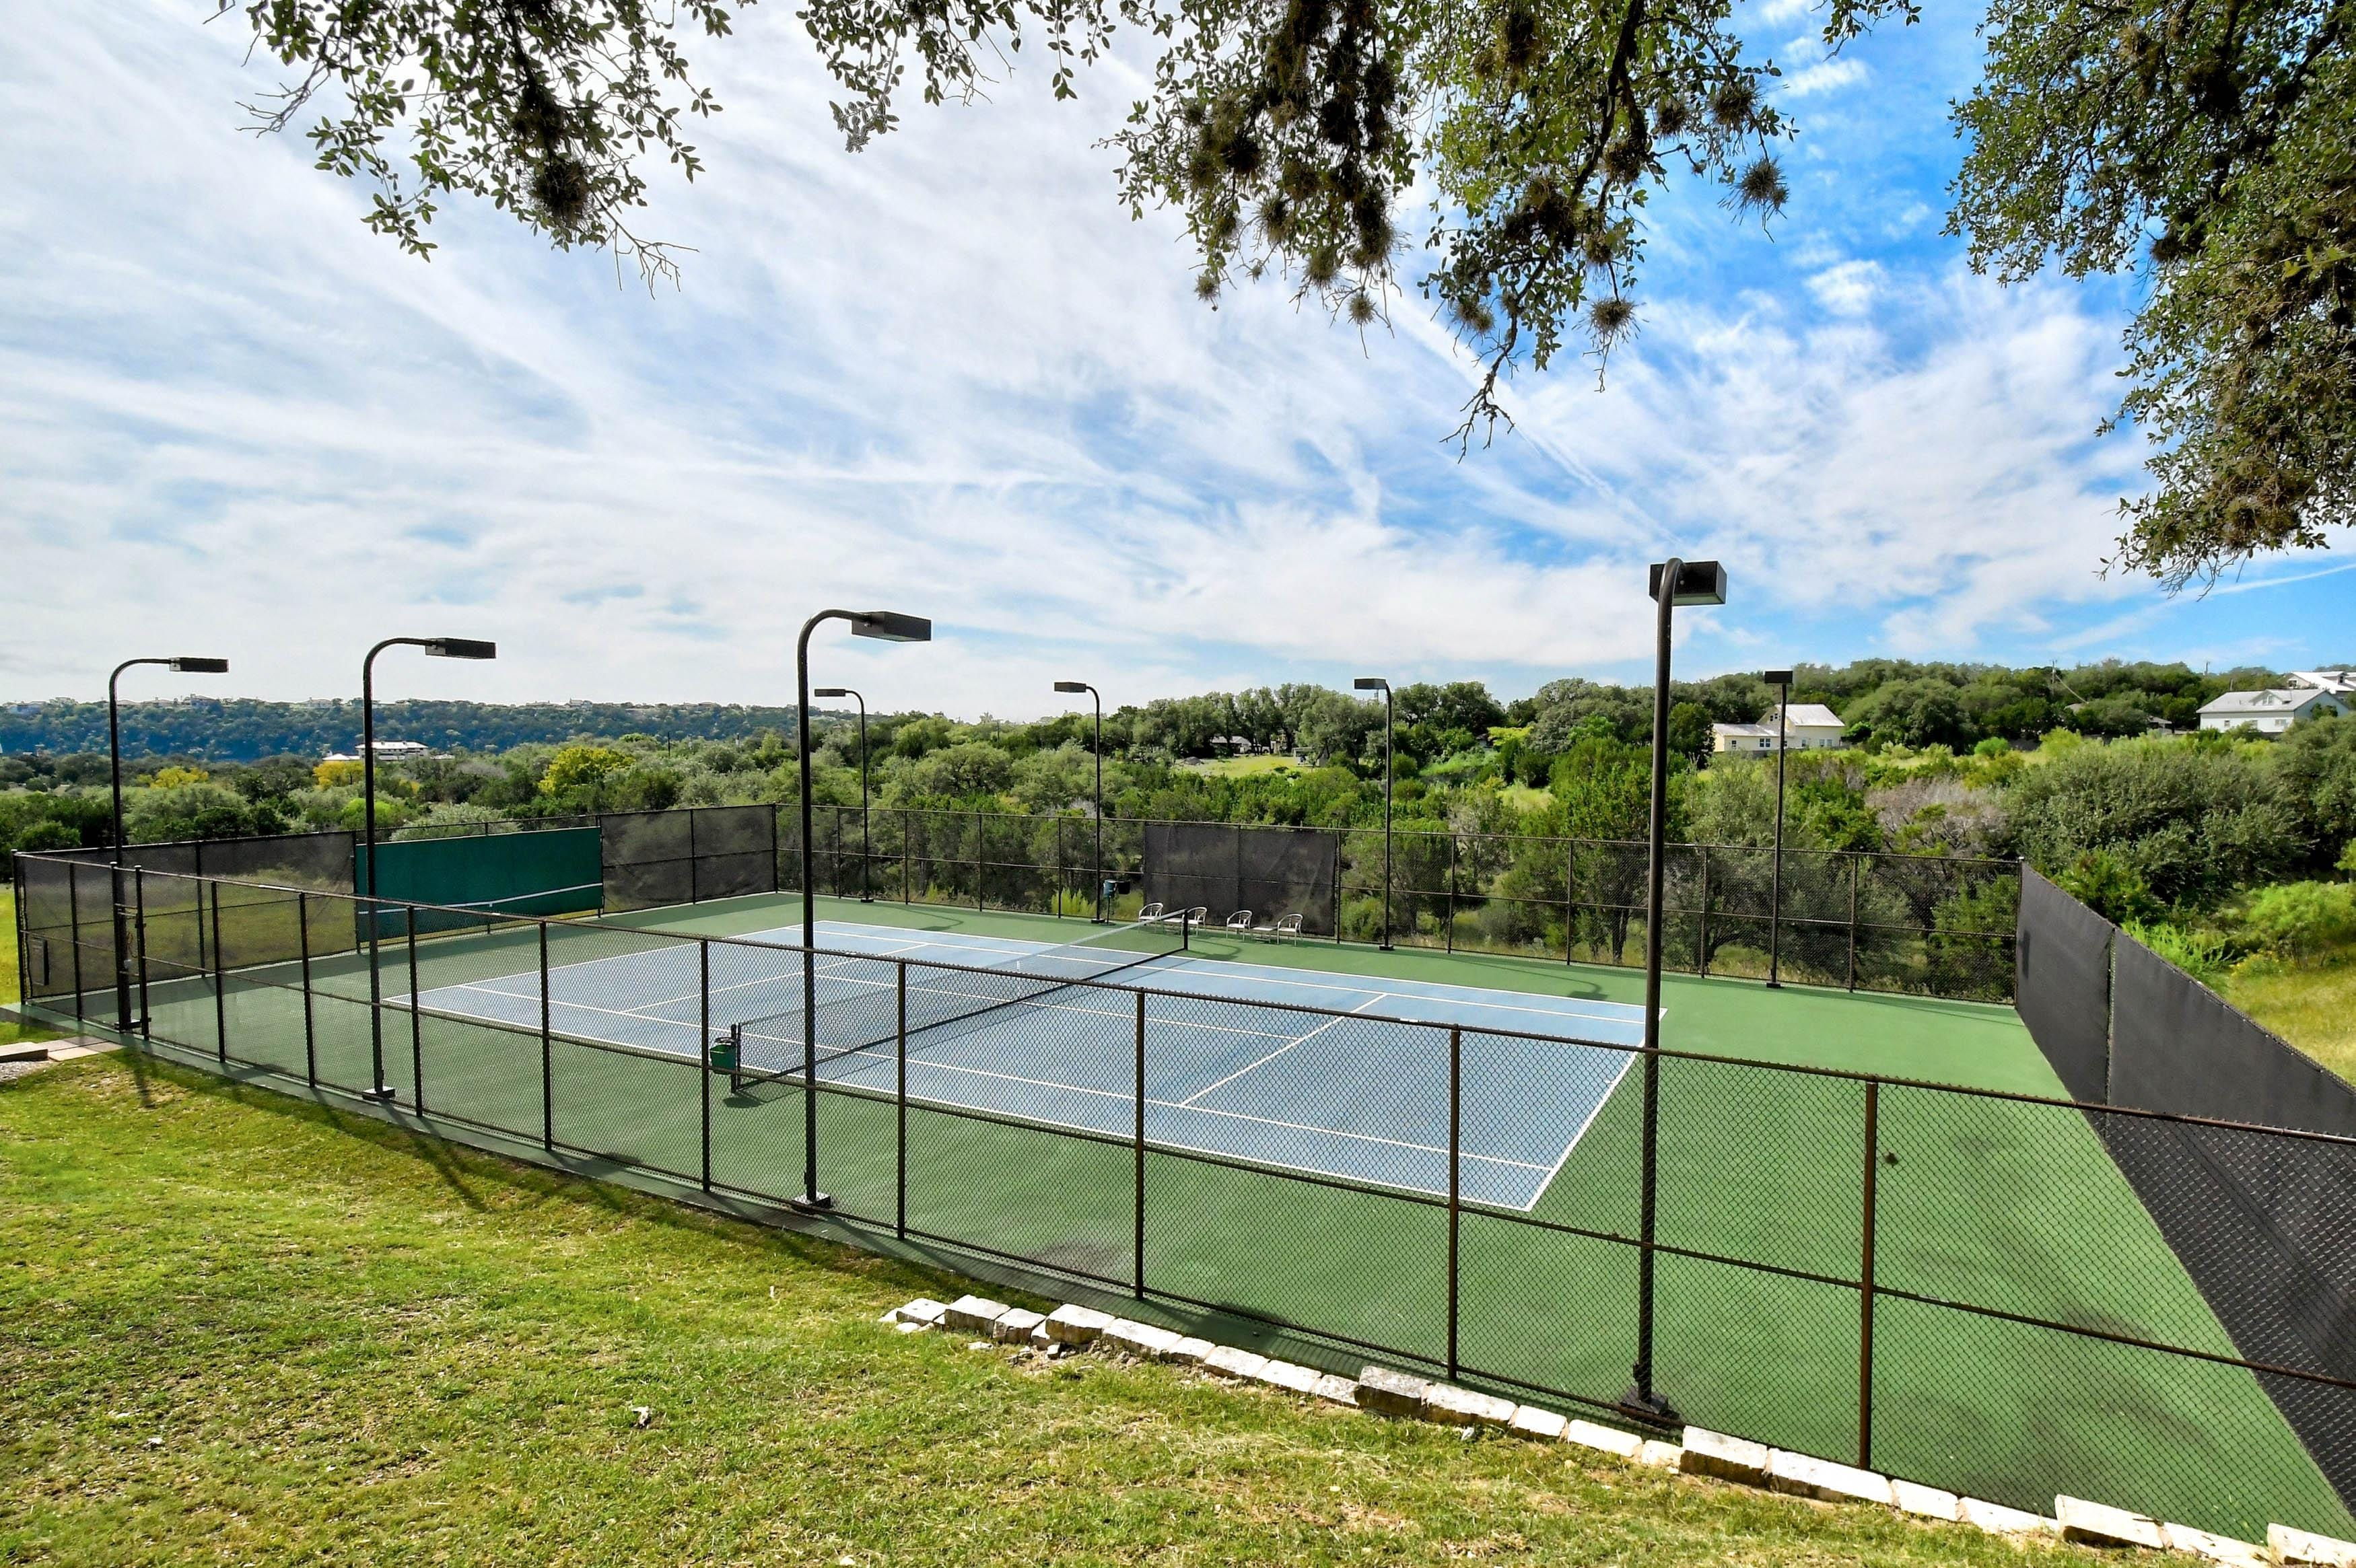 Stay active on the community tennis courts.